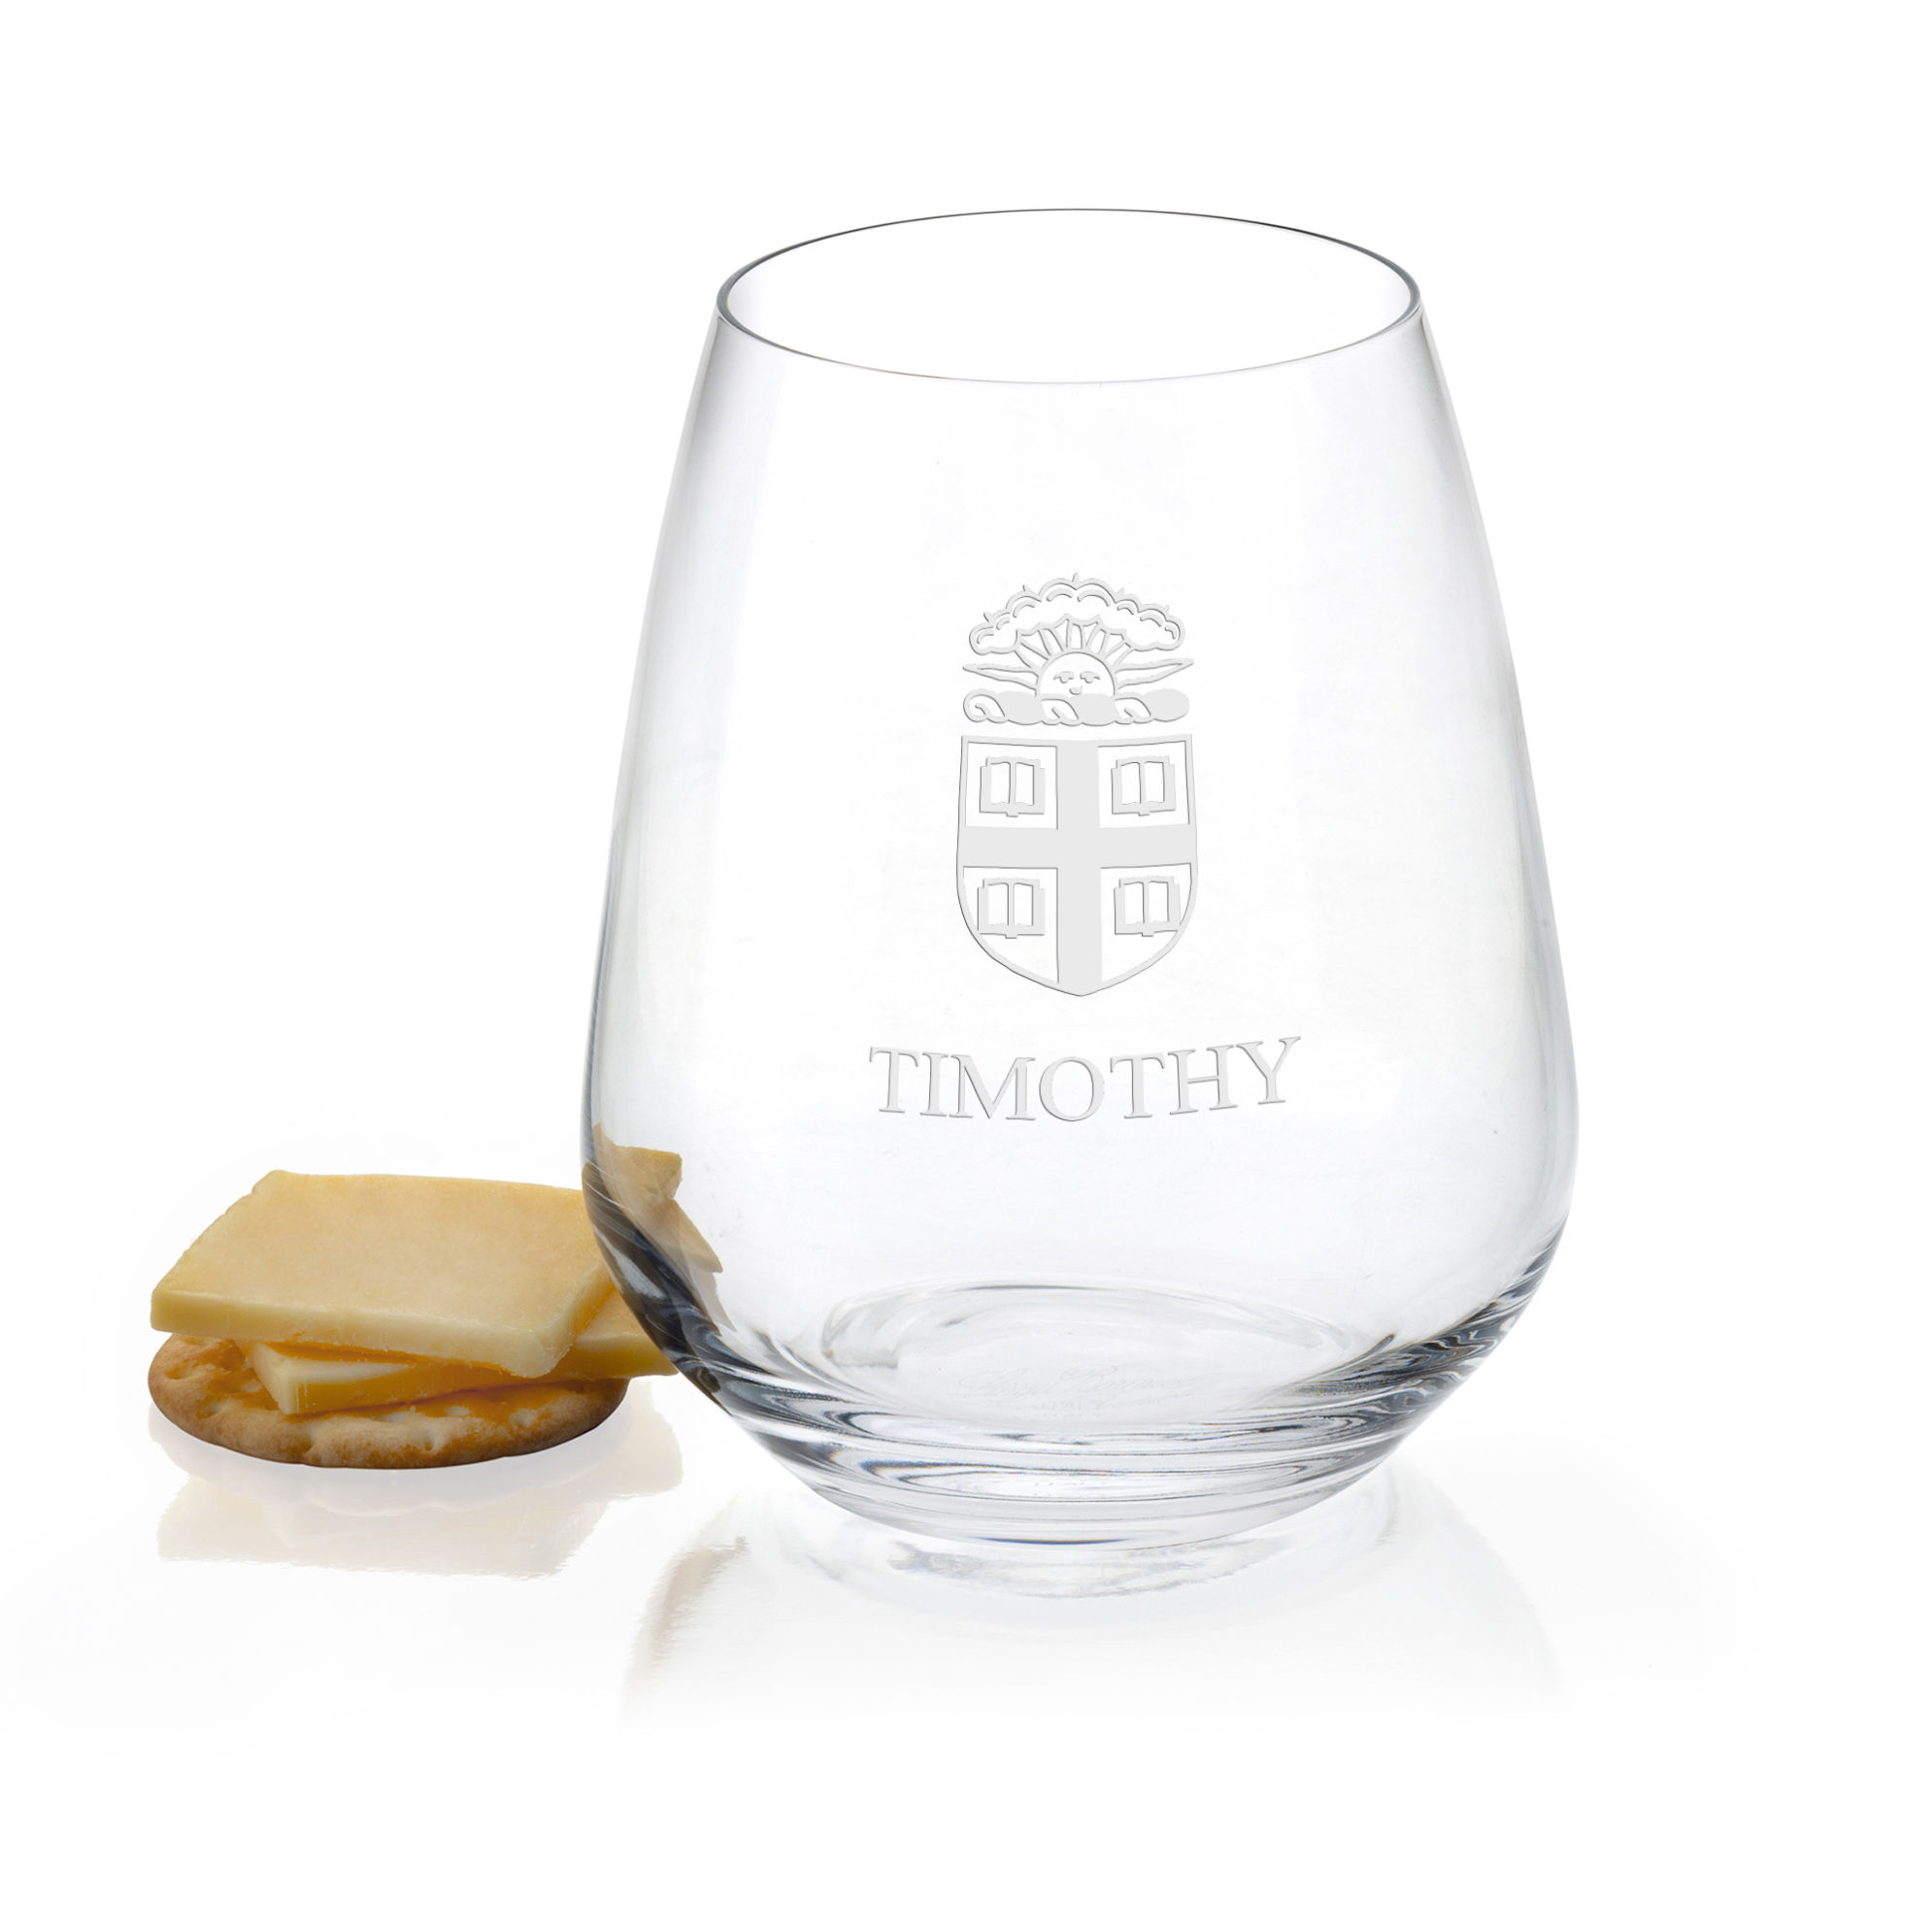 Brown University Stemless Wine Glasses - Set of 2